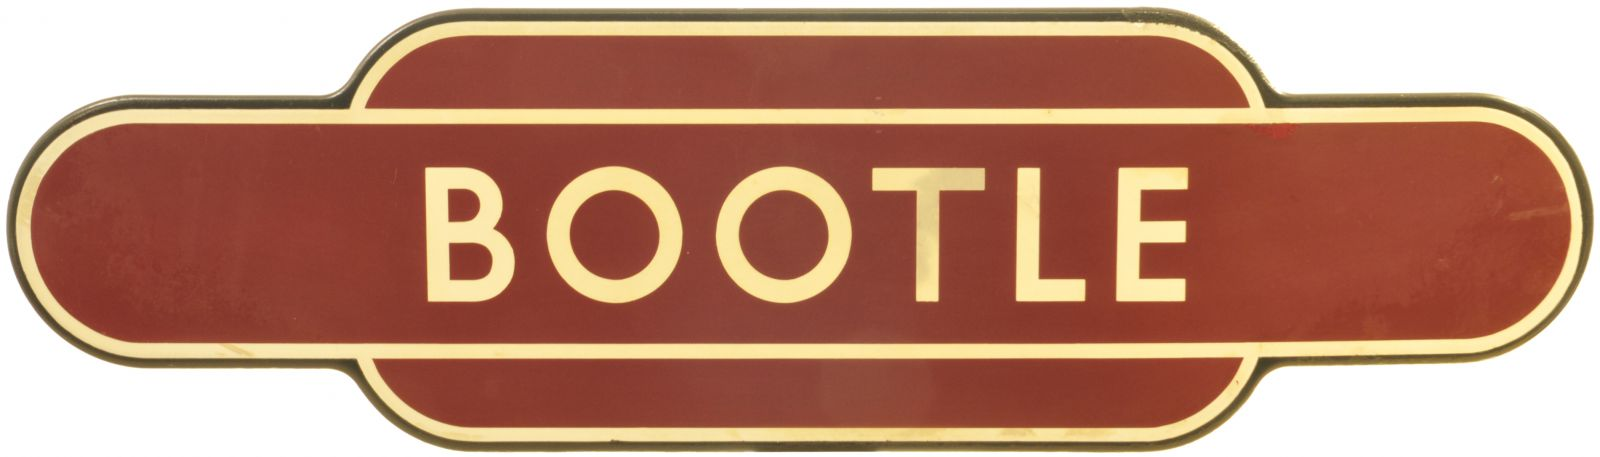 Lot 18 - Railway Station Totem Signs, Bootle: A BR(M) totem sign, BOOTLE, (f/f), from the Ravenglass to